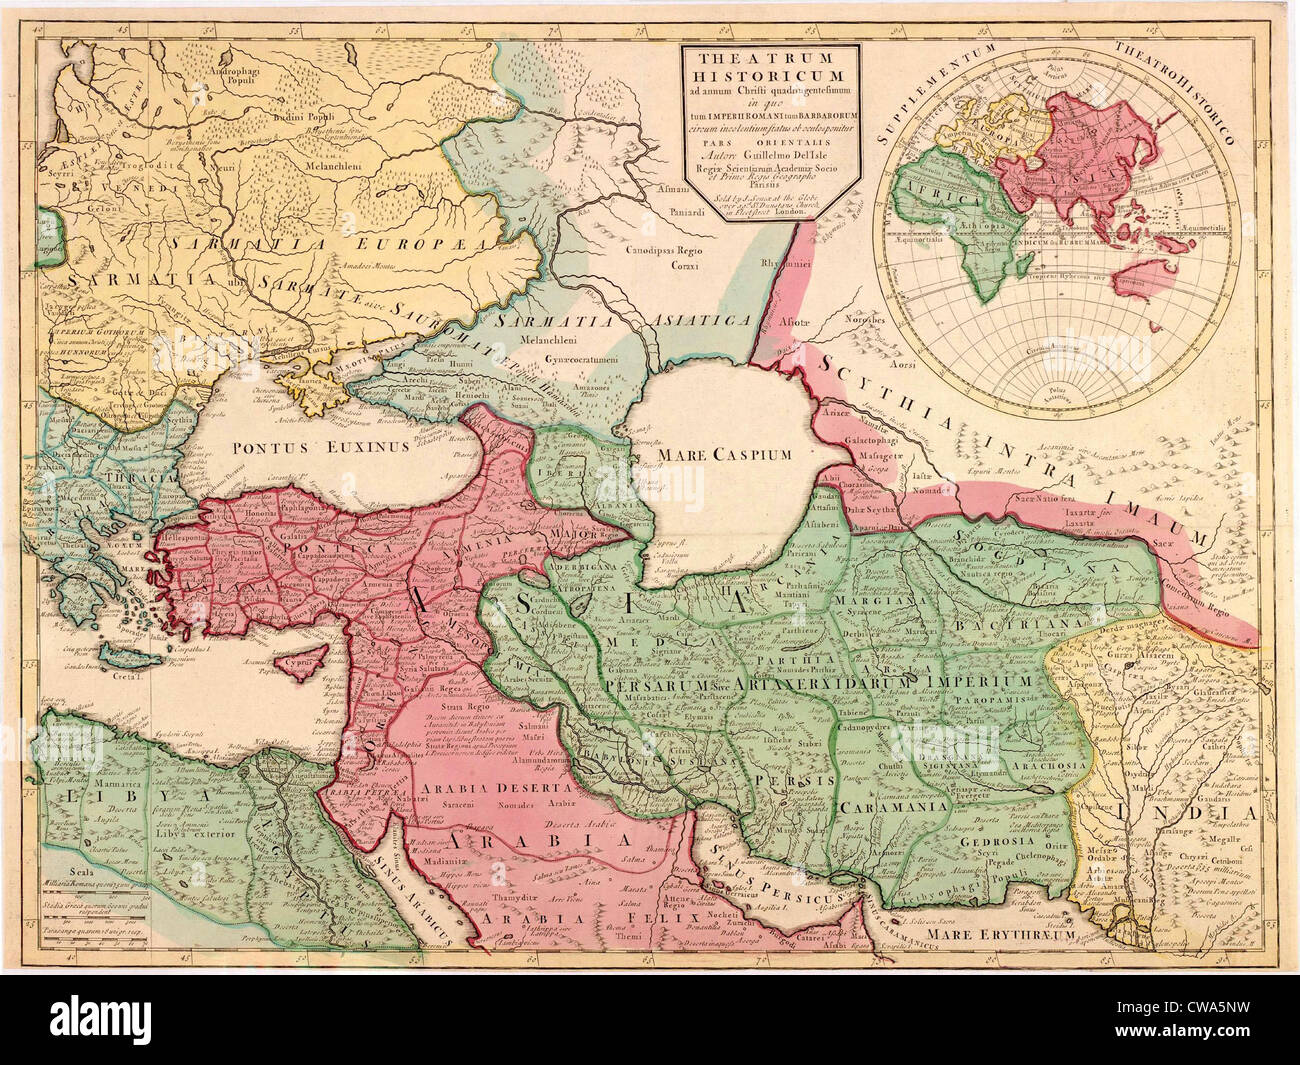 Late Roman Empire Map.1712 French Map Of Southwest Asia And Southeast Europe Recreating